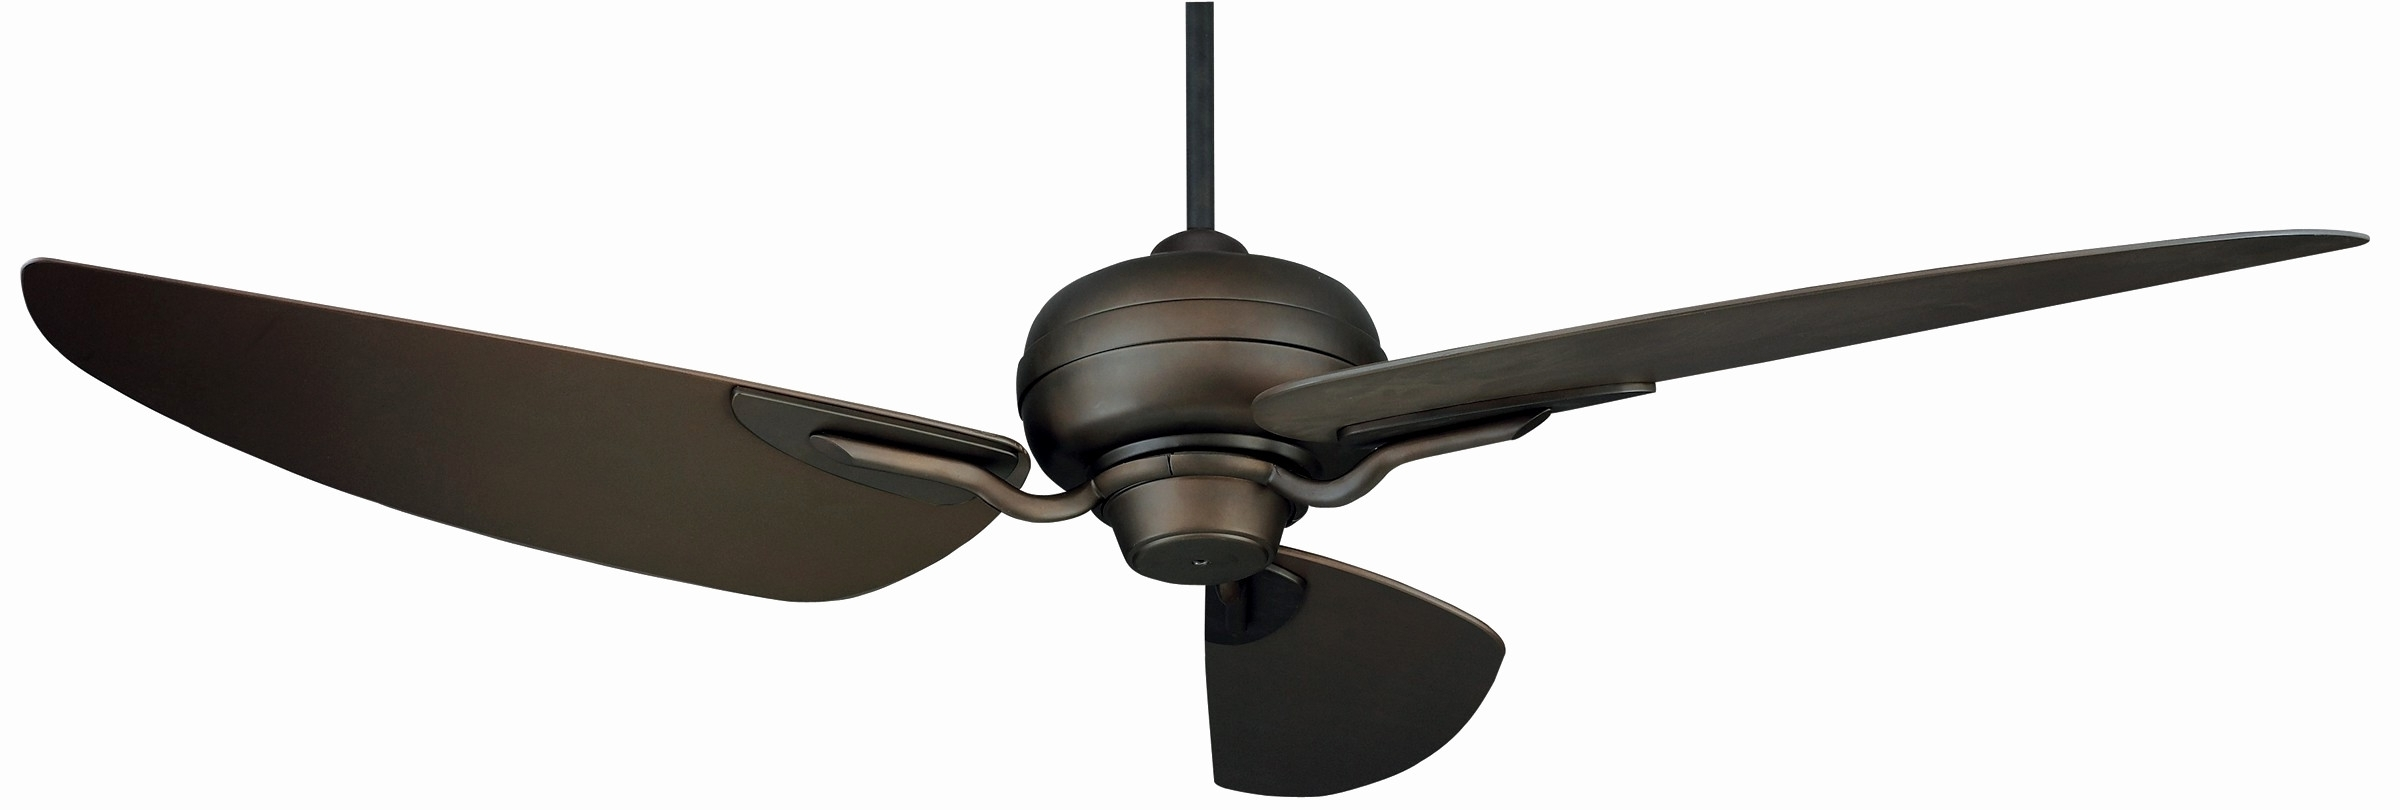 Trendy 60 Inch Outdoor Ceiling Fans With Lights With Best Inch Outdoor Ceiling Fan Ideas Inch Outdoor Fan 72 Of 60 Remote (View 19 of 20)